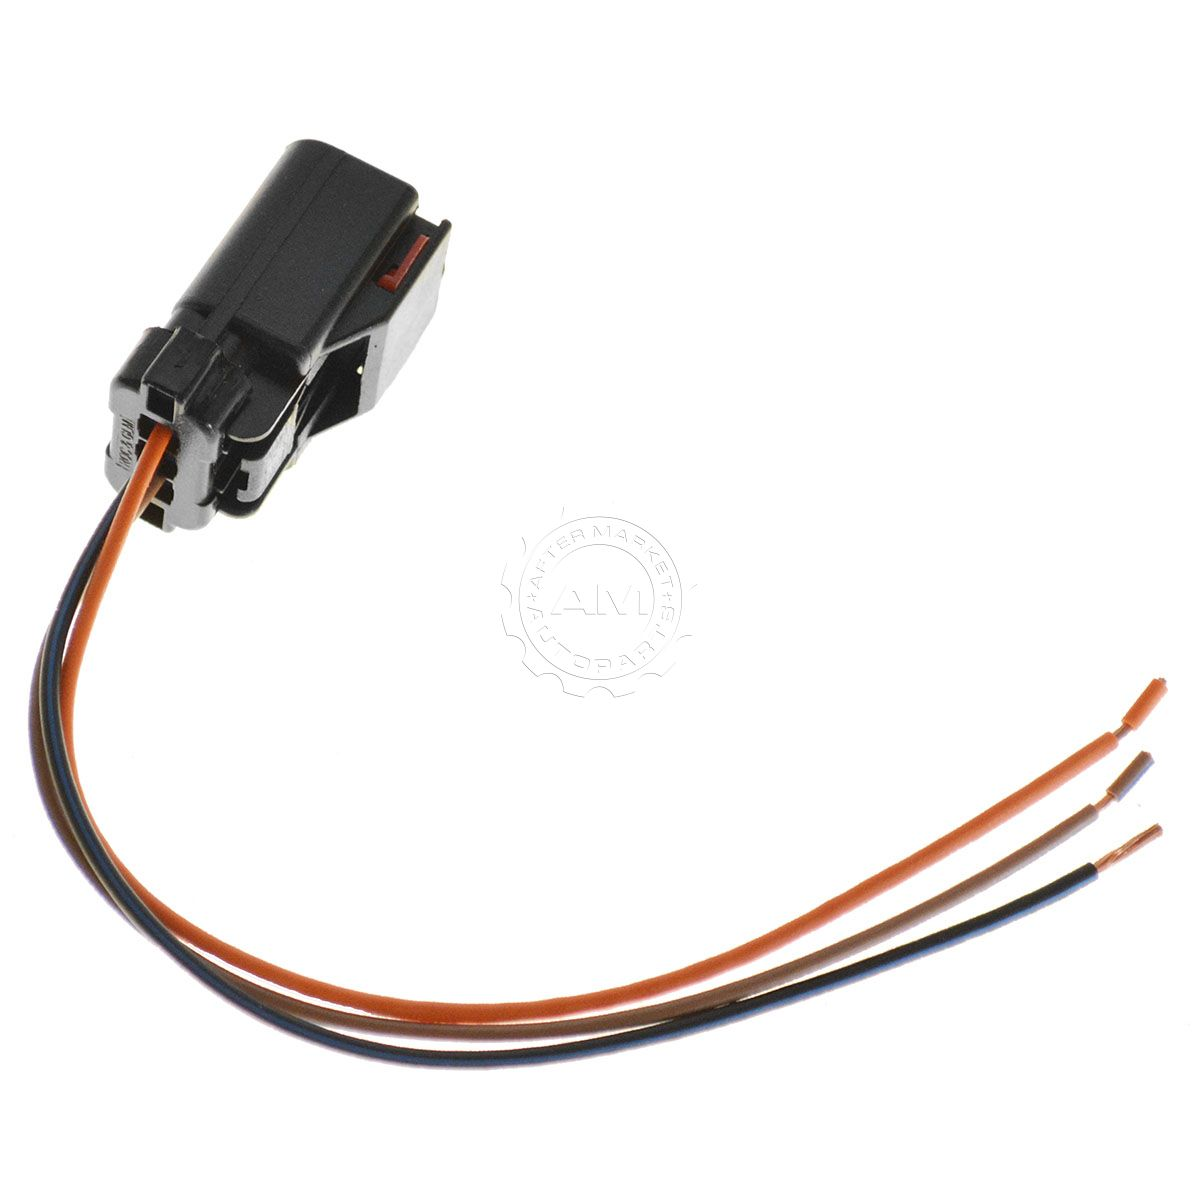 wiring connector pigtail harness 3 terminal pin for chrysler dodge